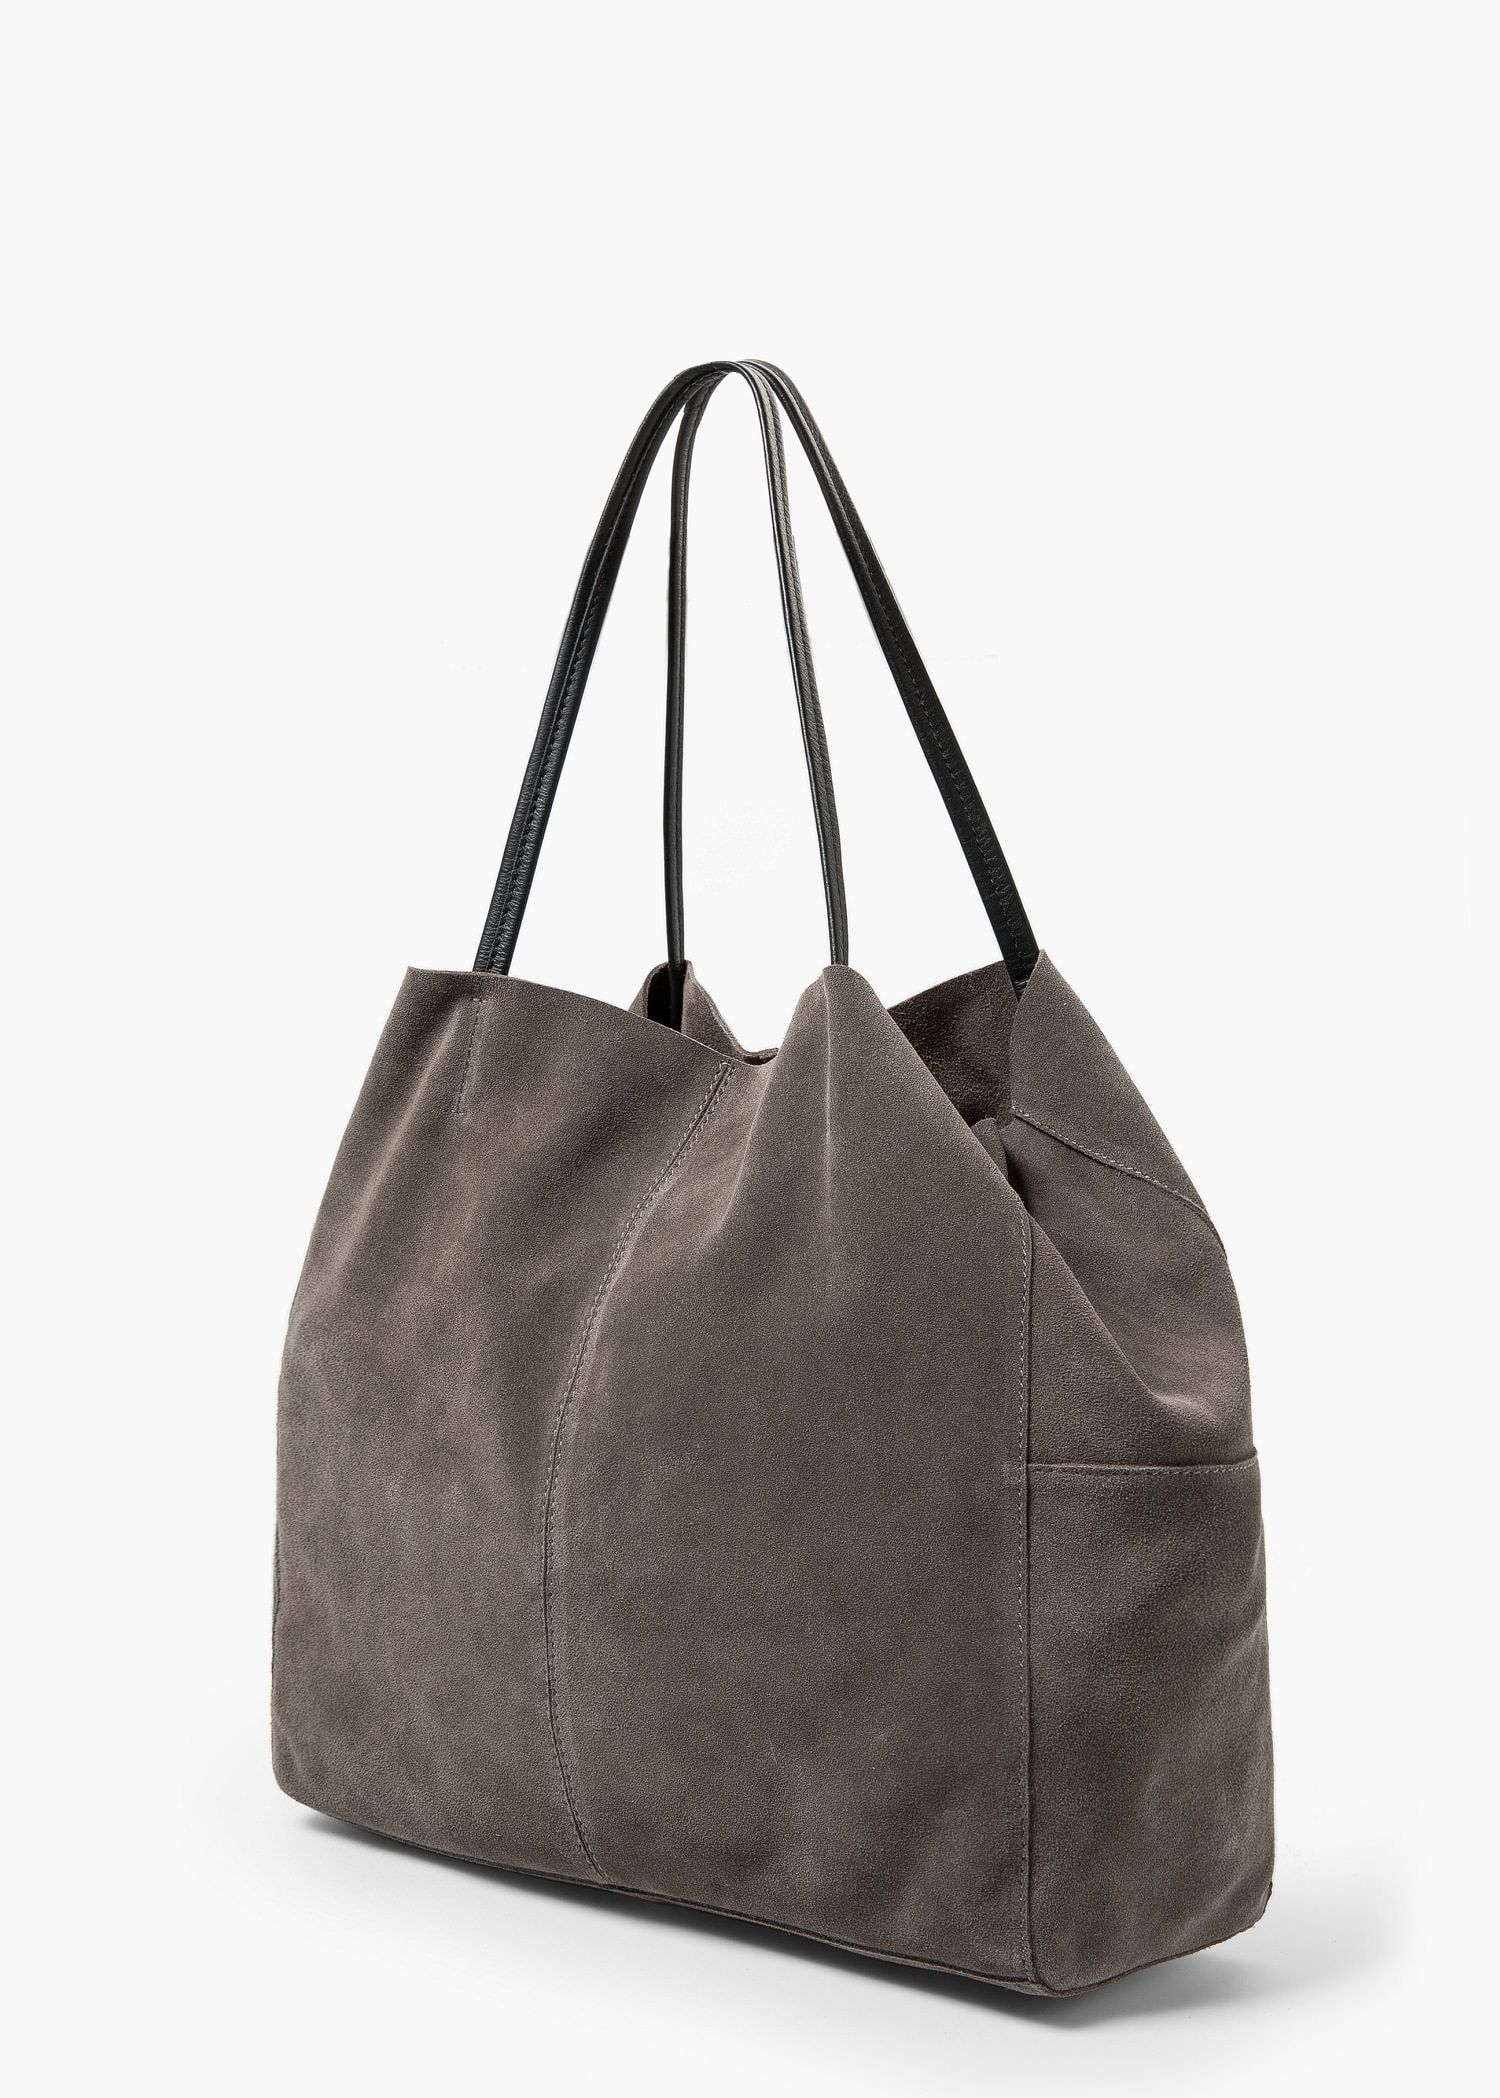 46918df35c728 Suede shopper bag - Woman